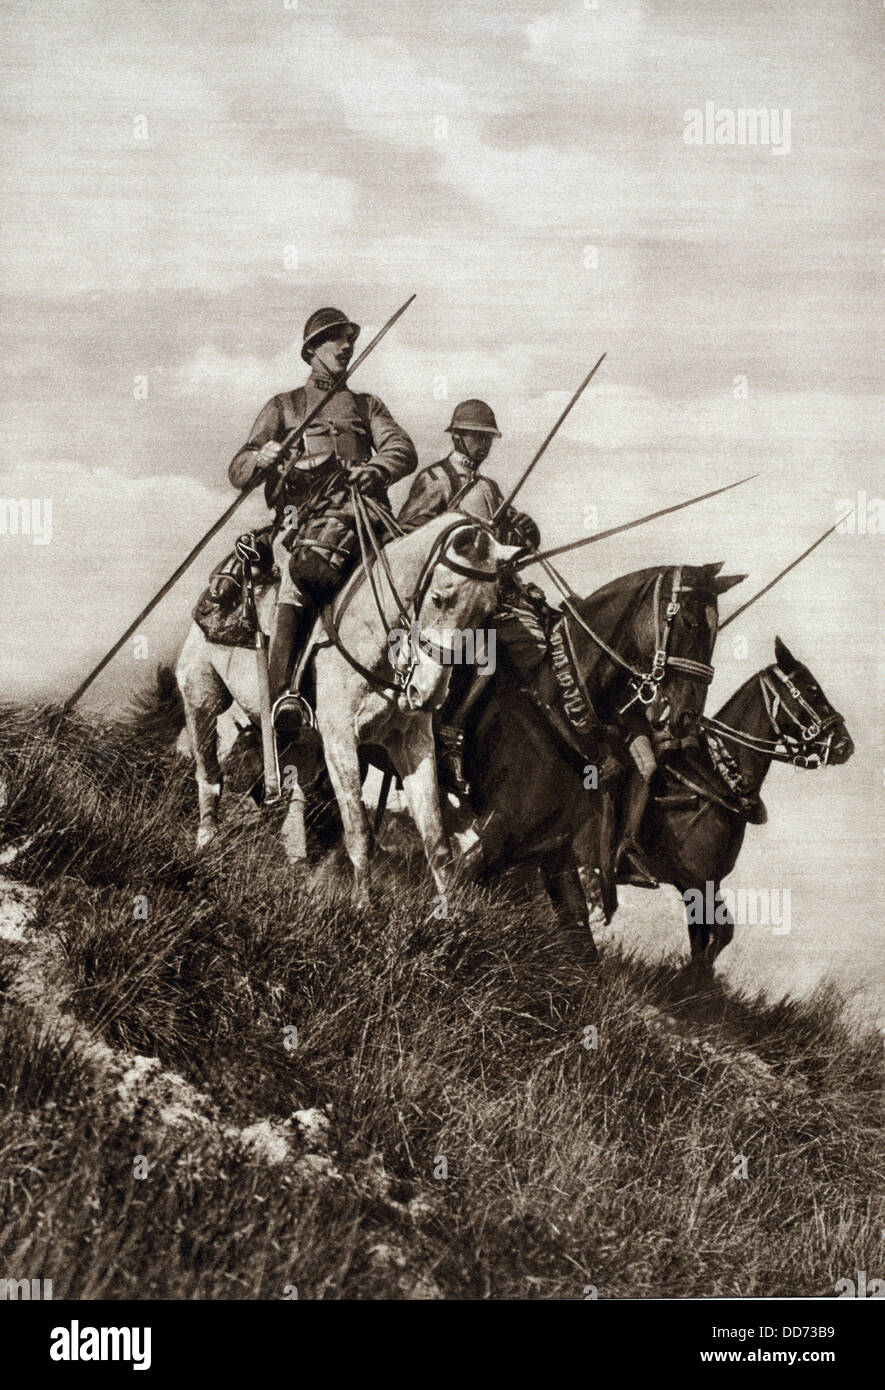 French WW1 cavalry patrol the Aisne to which the Germans had been driven. Sept. 1914. At this time German Armies - Stock Image